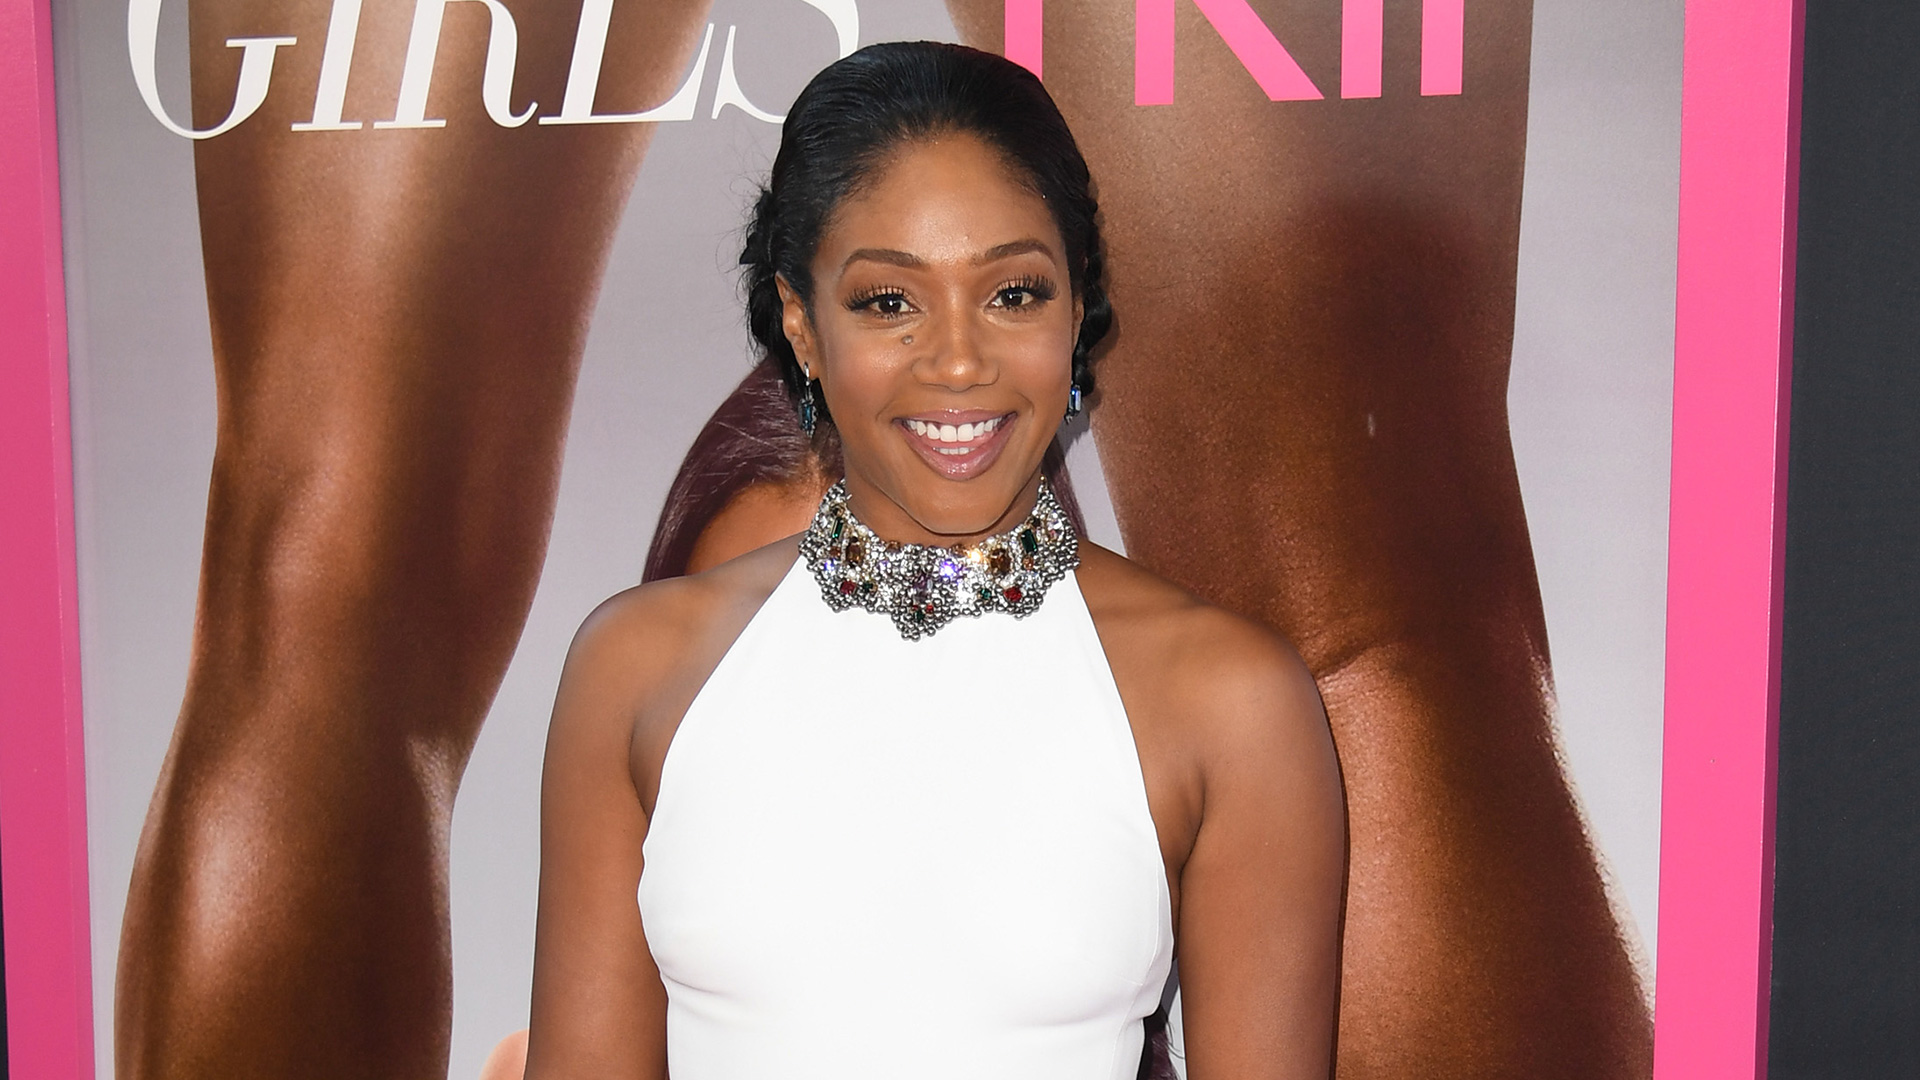 December 3, 1979: Tiffany Haddish Was Born